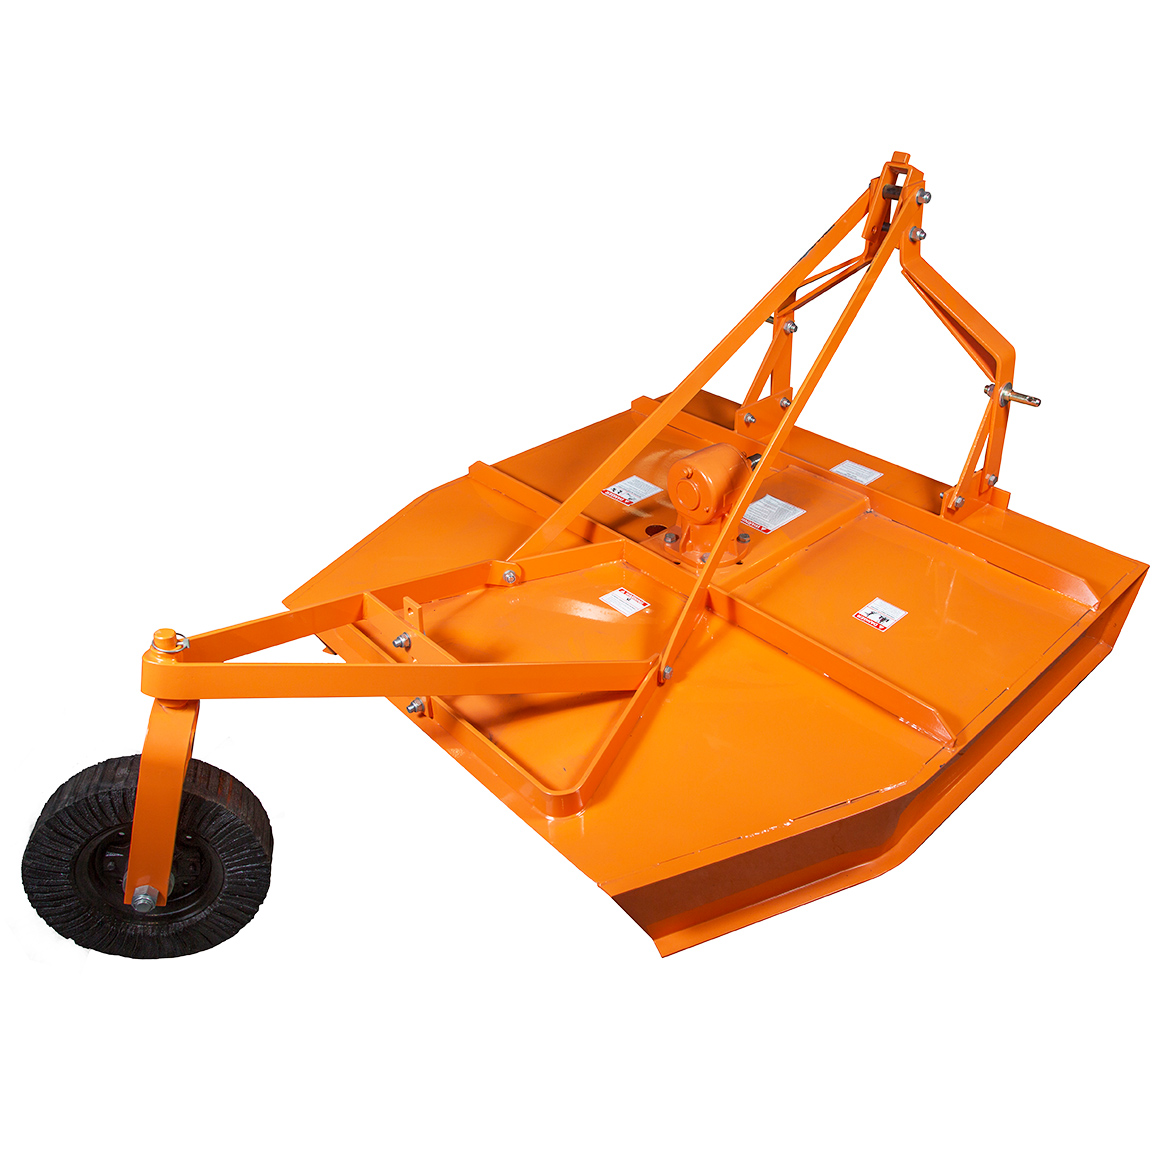 08a2a3228b0 Details about Power King PK1604 12 GA Shielded PTO C-Channel Design Rough  Cut Rotary Mower